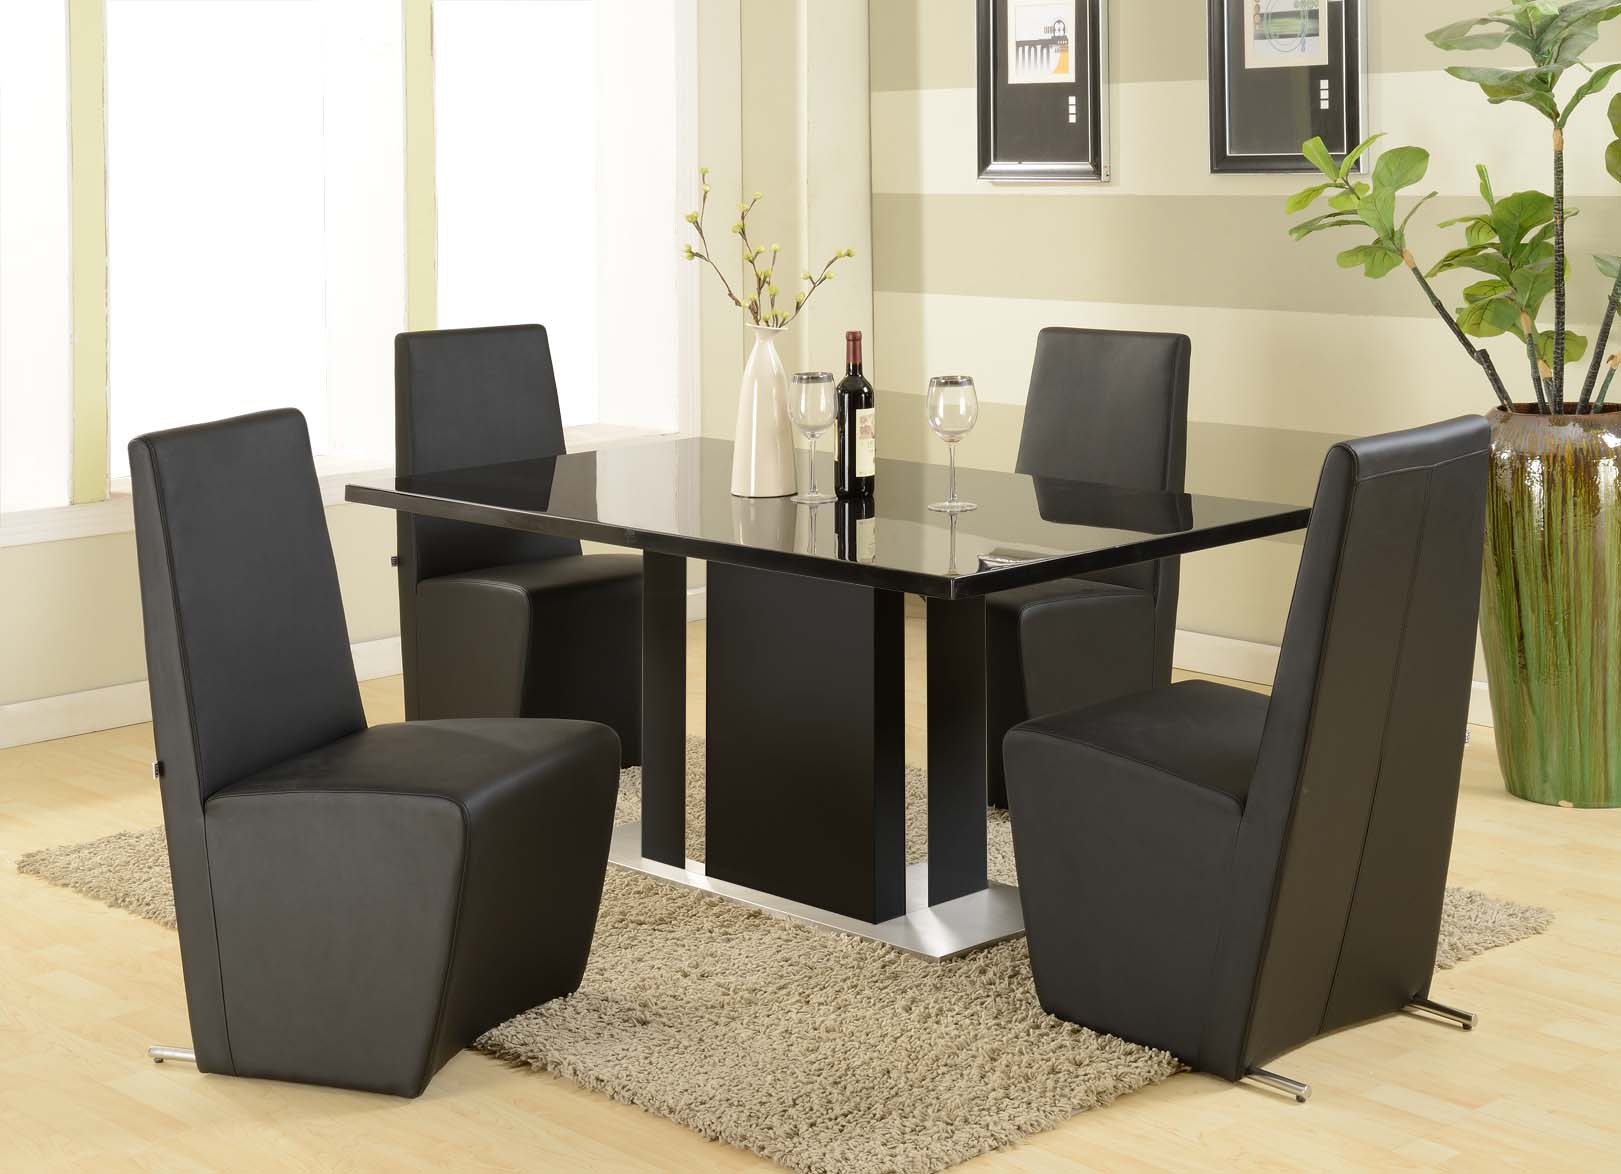 Dining Room Tables Contemporary Room Contemporary Gavino Italia Ultra Modern Black Marble Dining